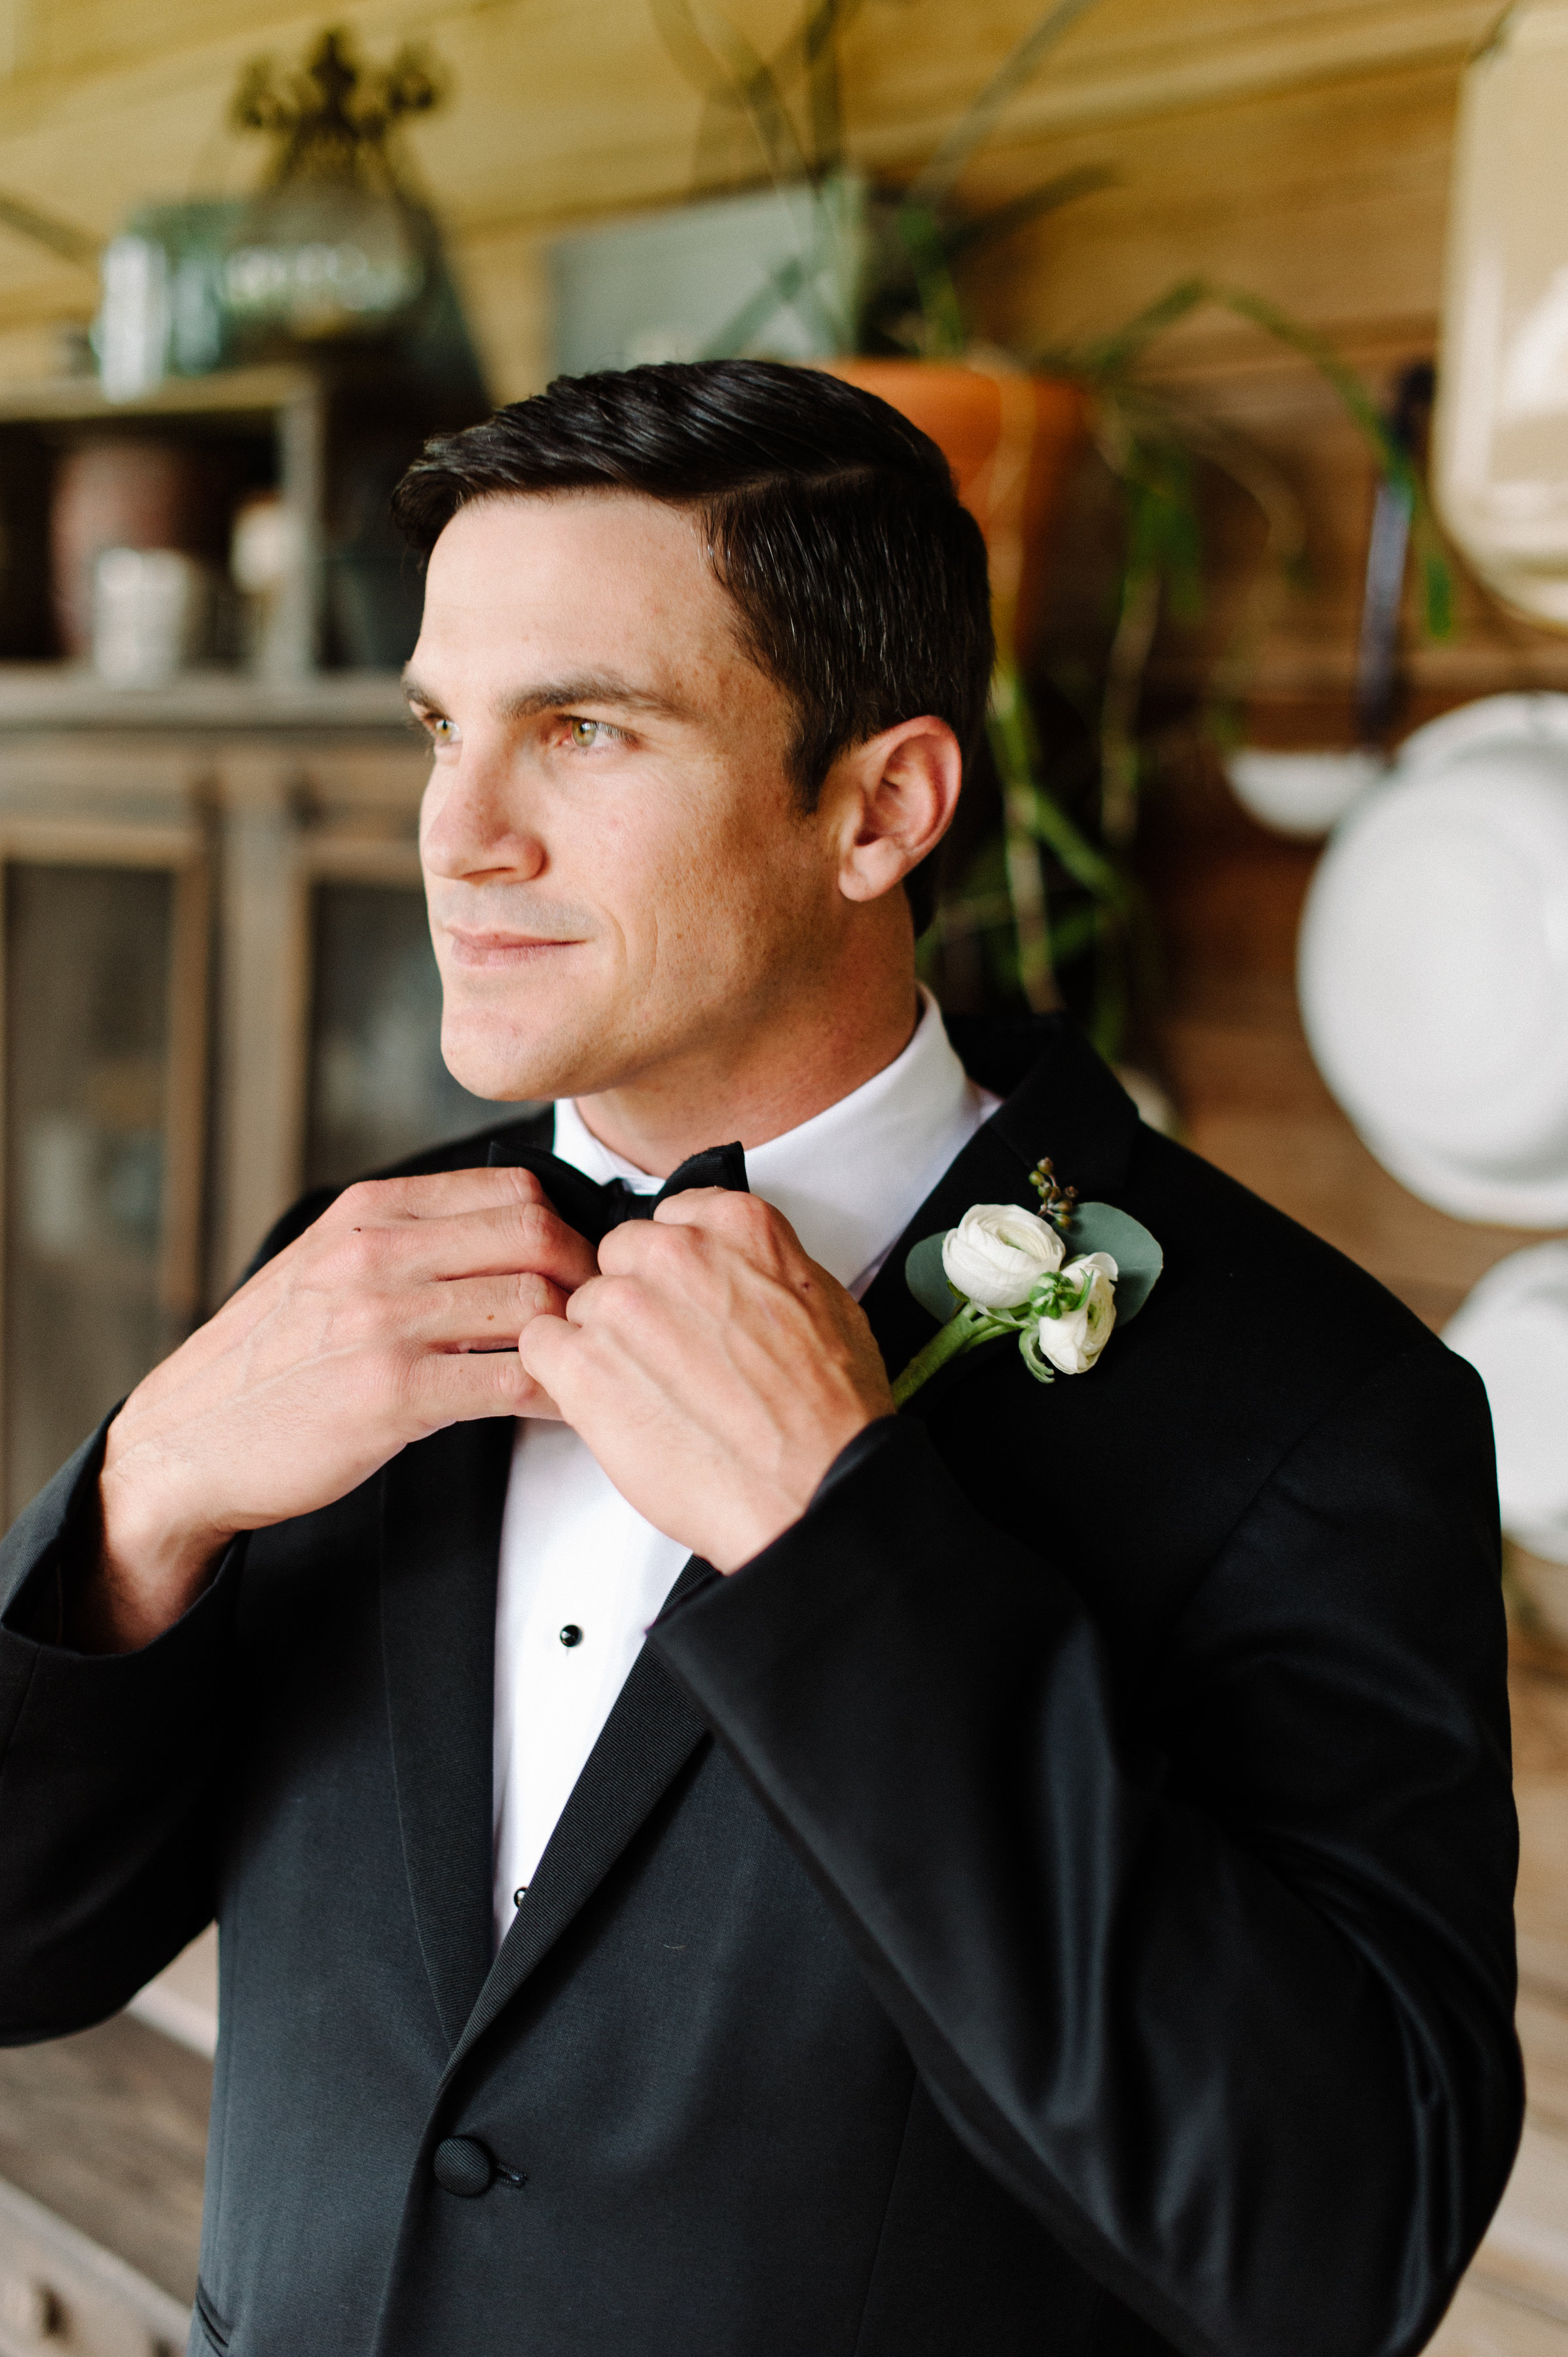 The groom and his bow tie